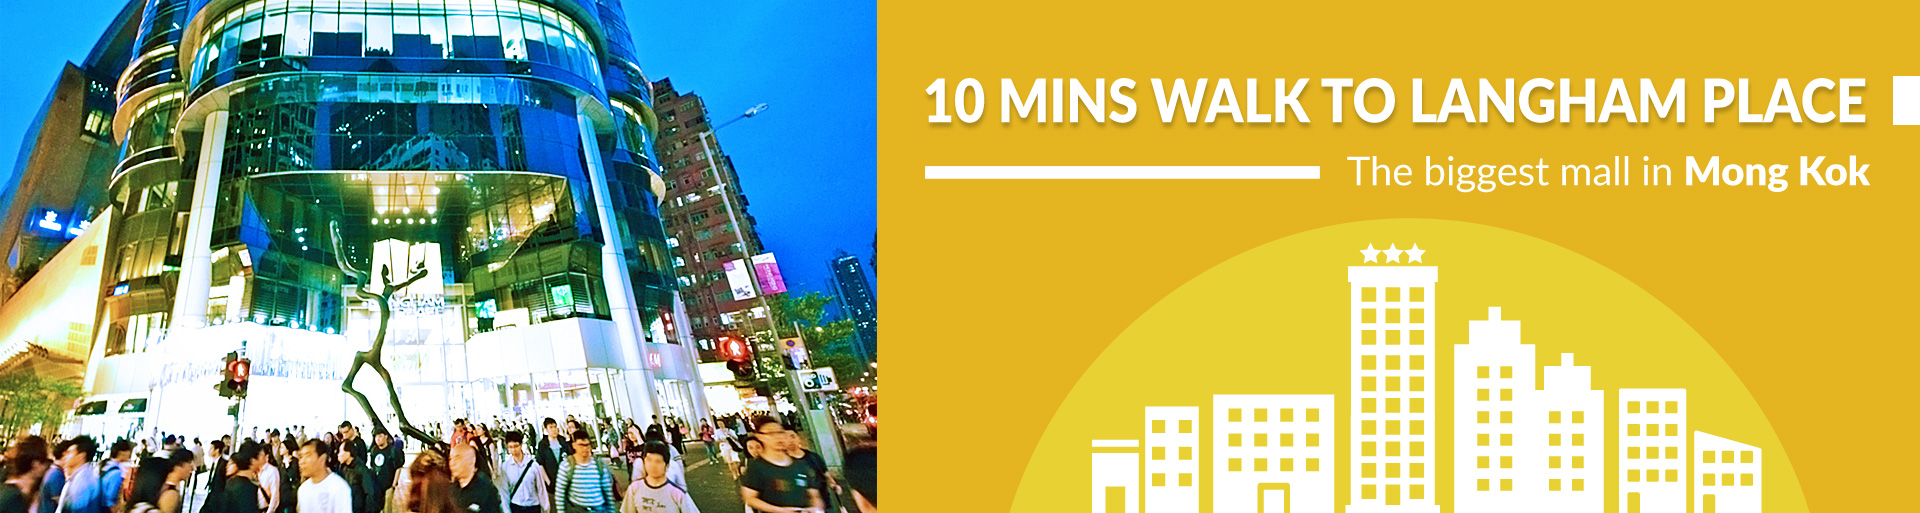 10 mins walk to Langham Place - The biggest mall in Mong Kok